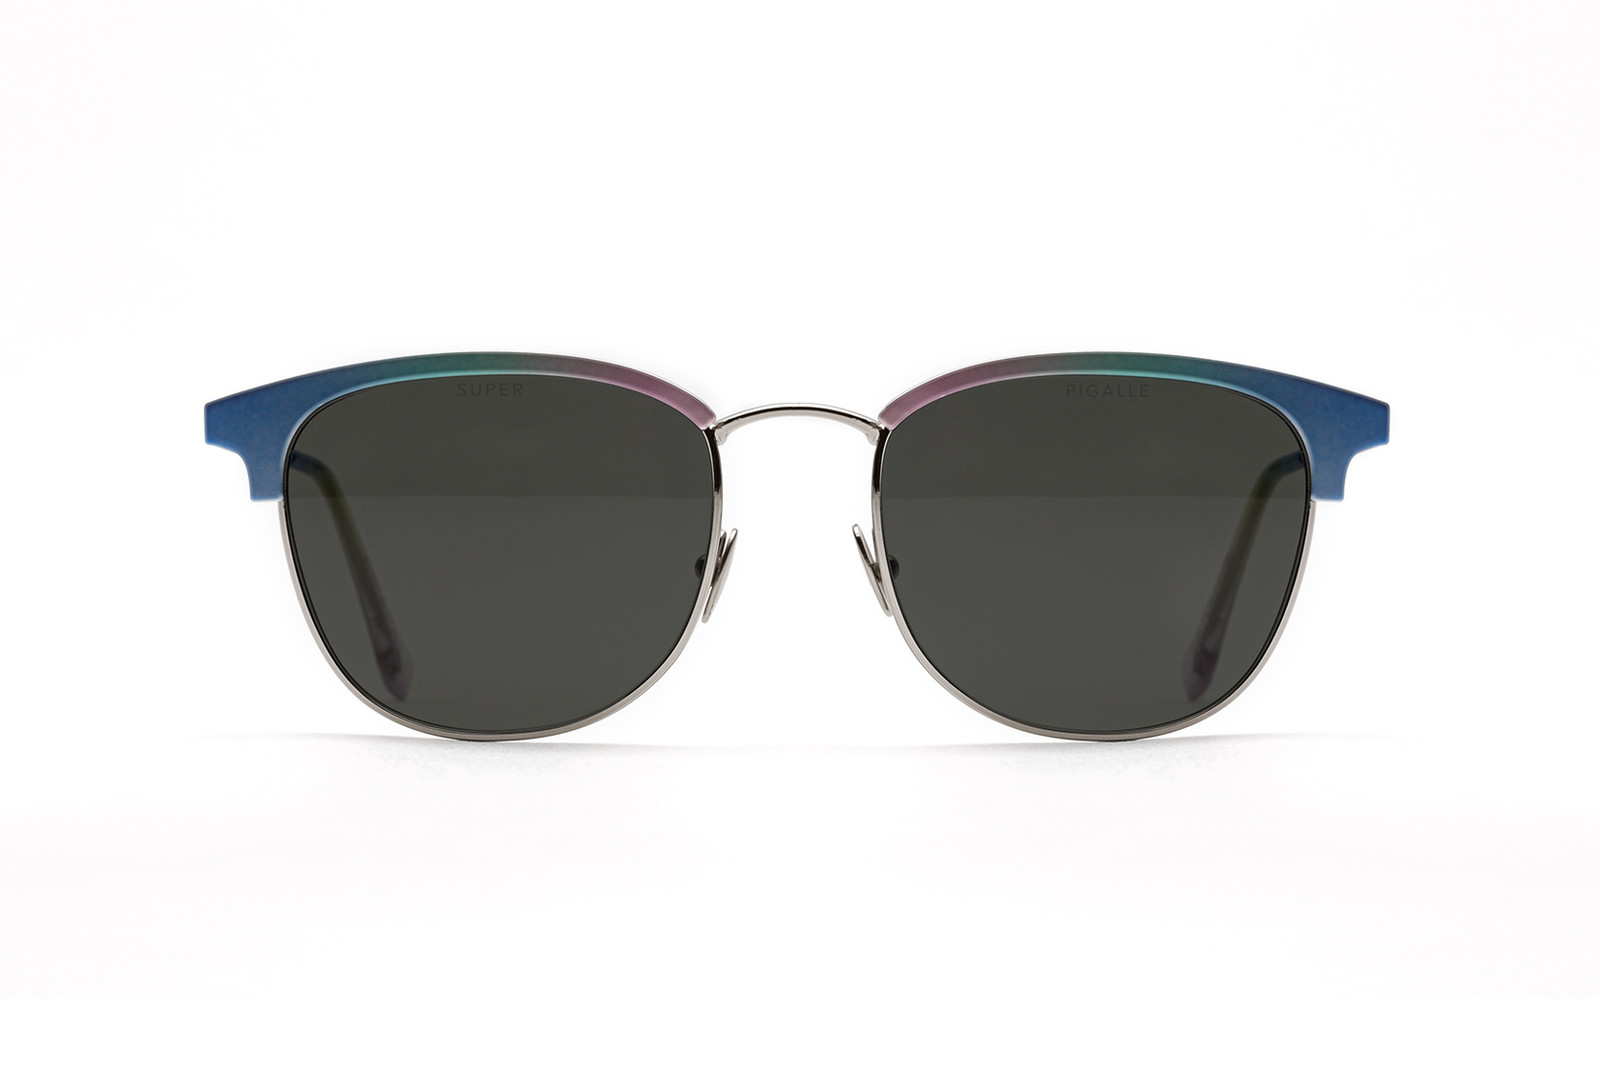 Pigalle x SUPER by RETROSUPERFUTURE Sunglasses